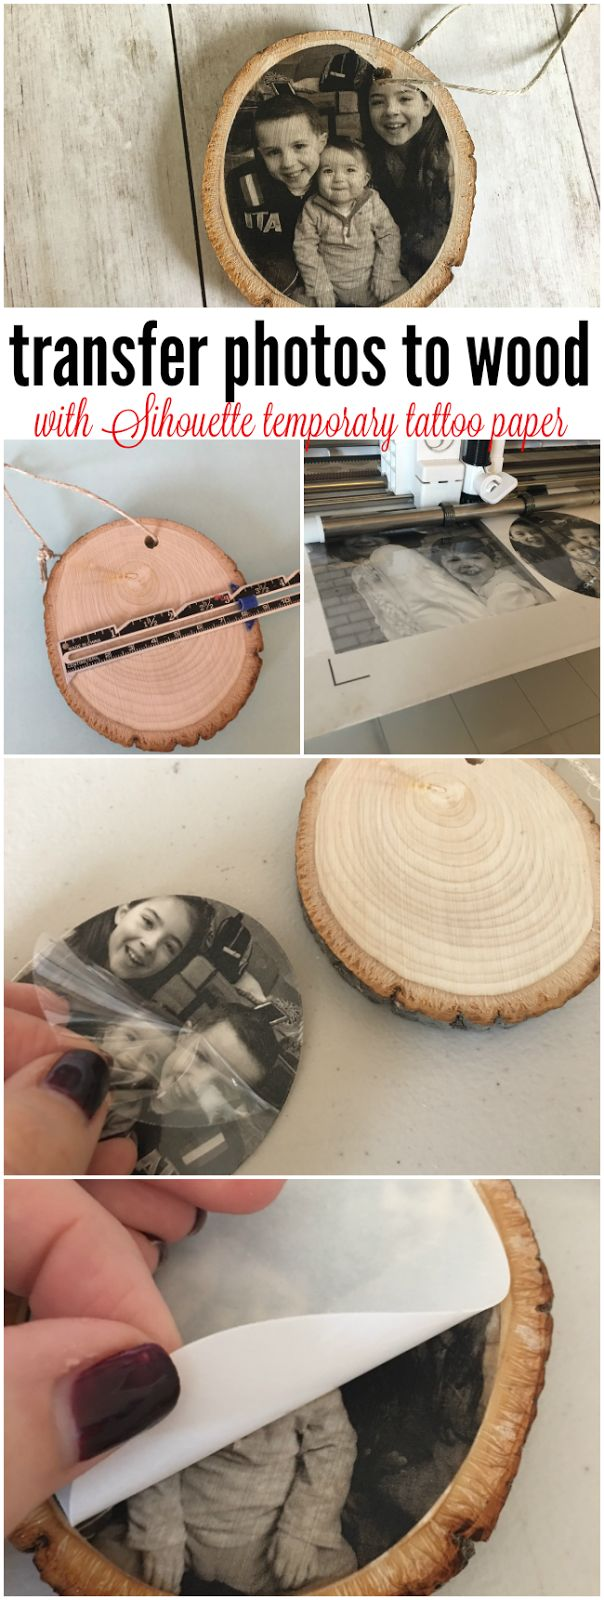 Transferring Photos to Wood with Silhouette Temporary Tattoo Paper - Silhouette School